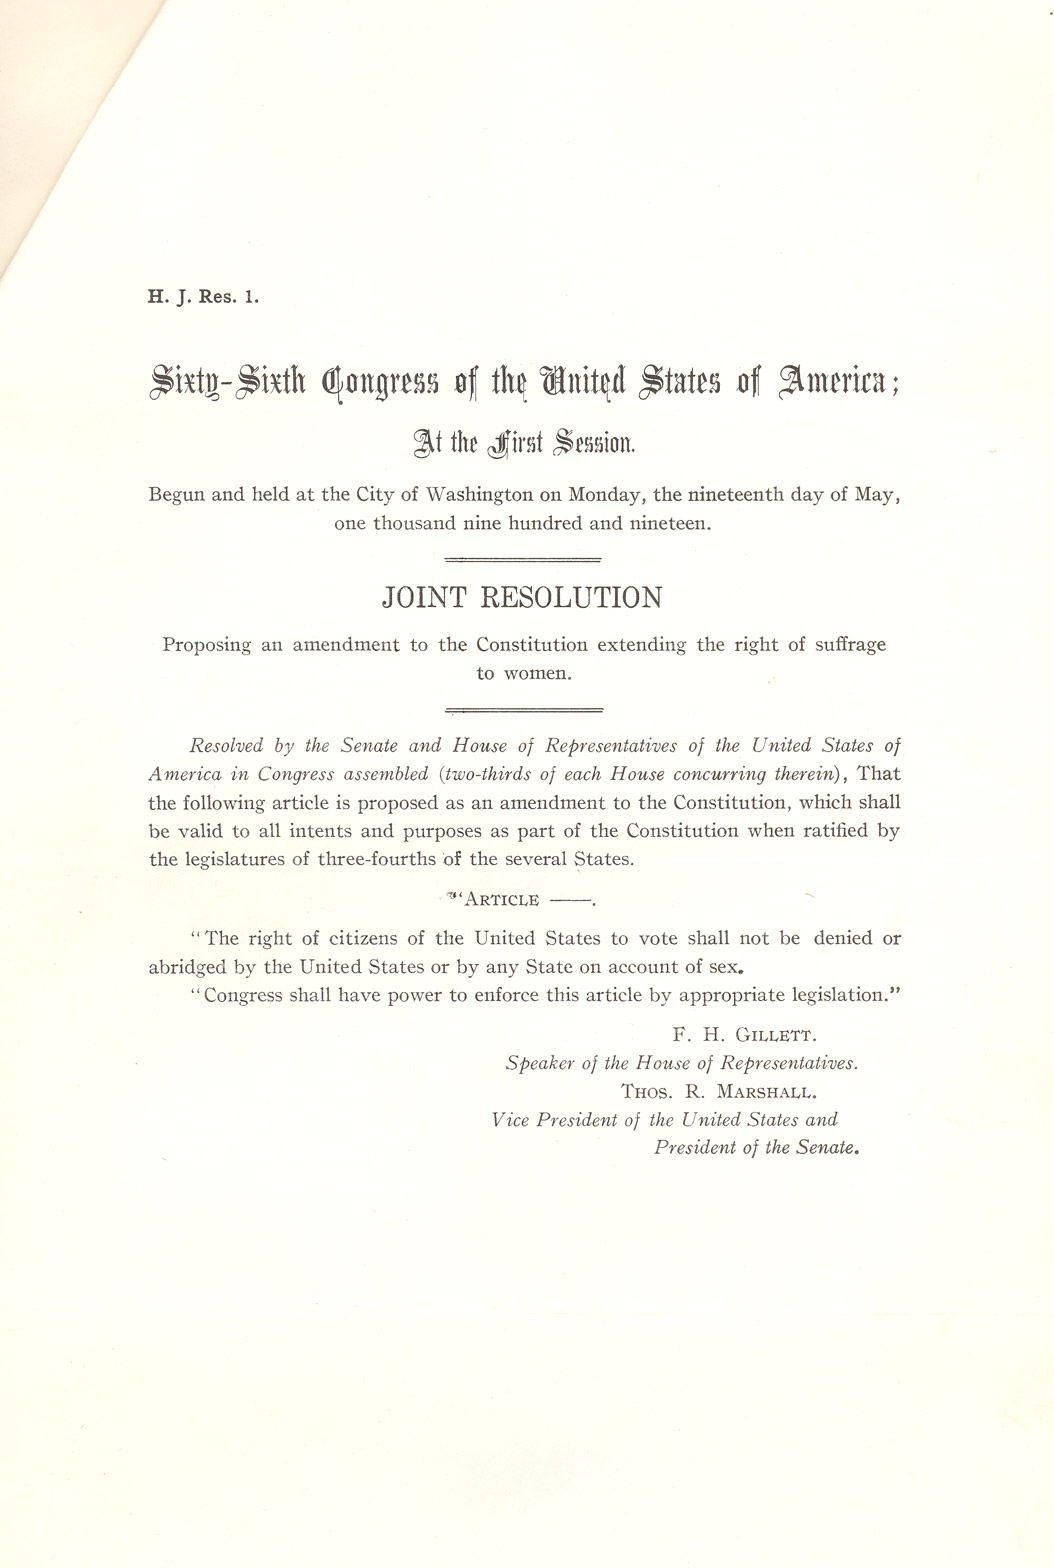 section w suffrage to north dakota studies document 8 1 of 2 side 1 in 1919 congress passed an amendment to the u s constitution the amendment had to be approved by the legislatures of